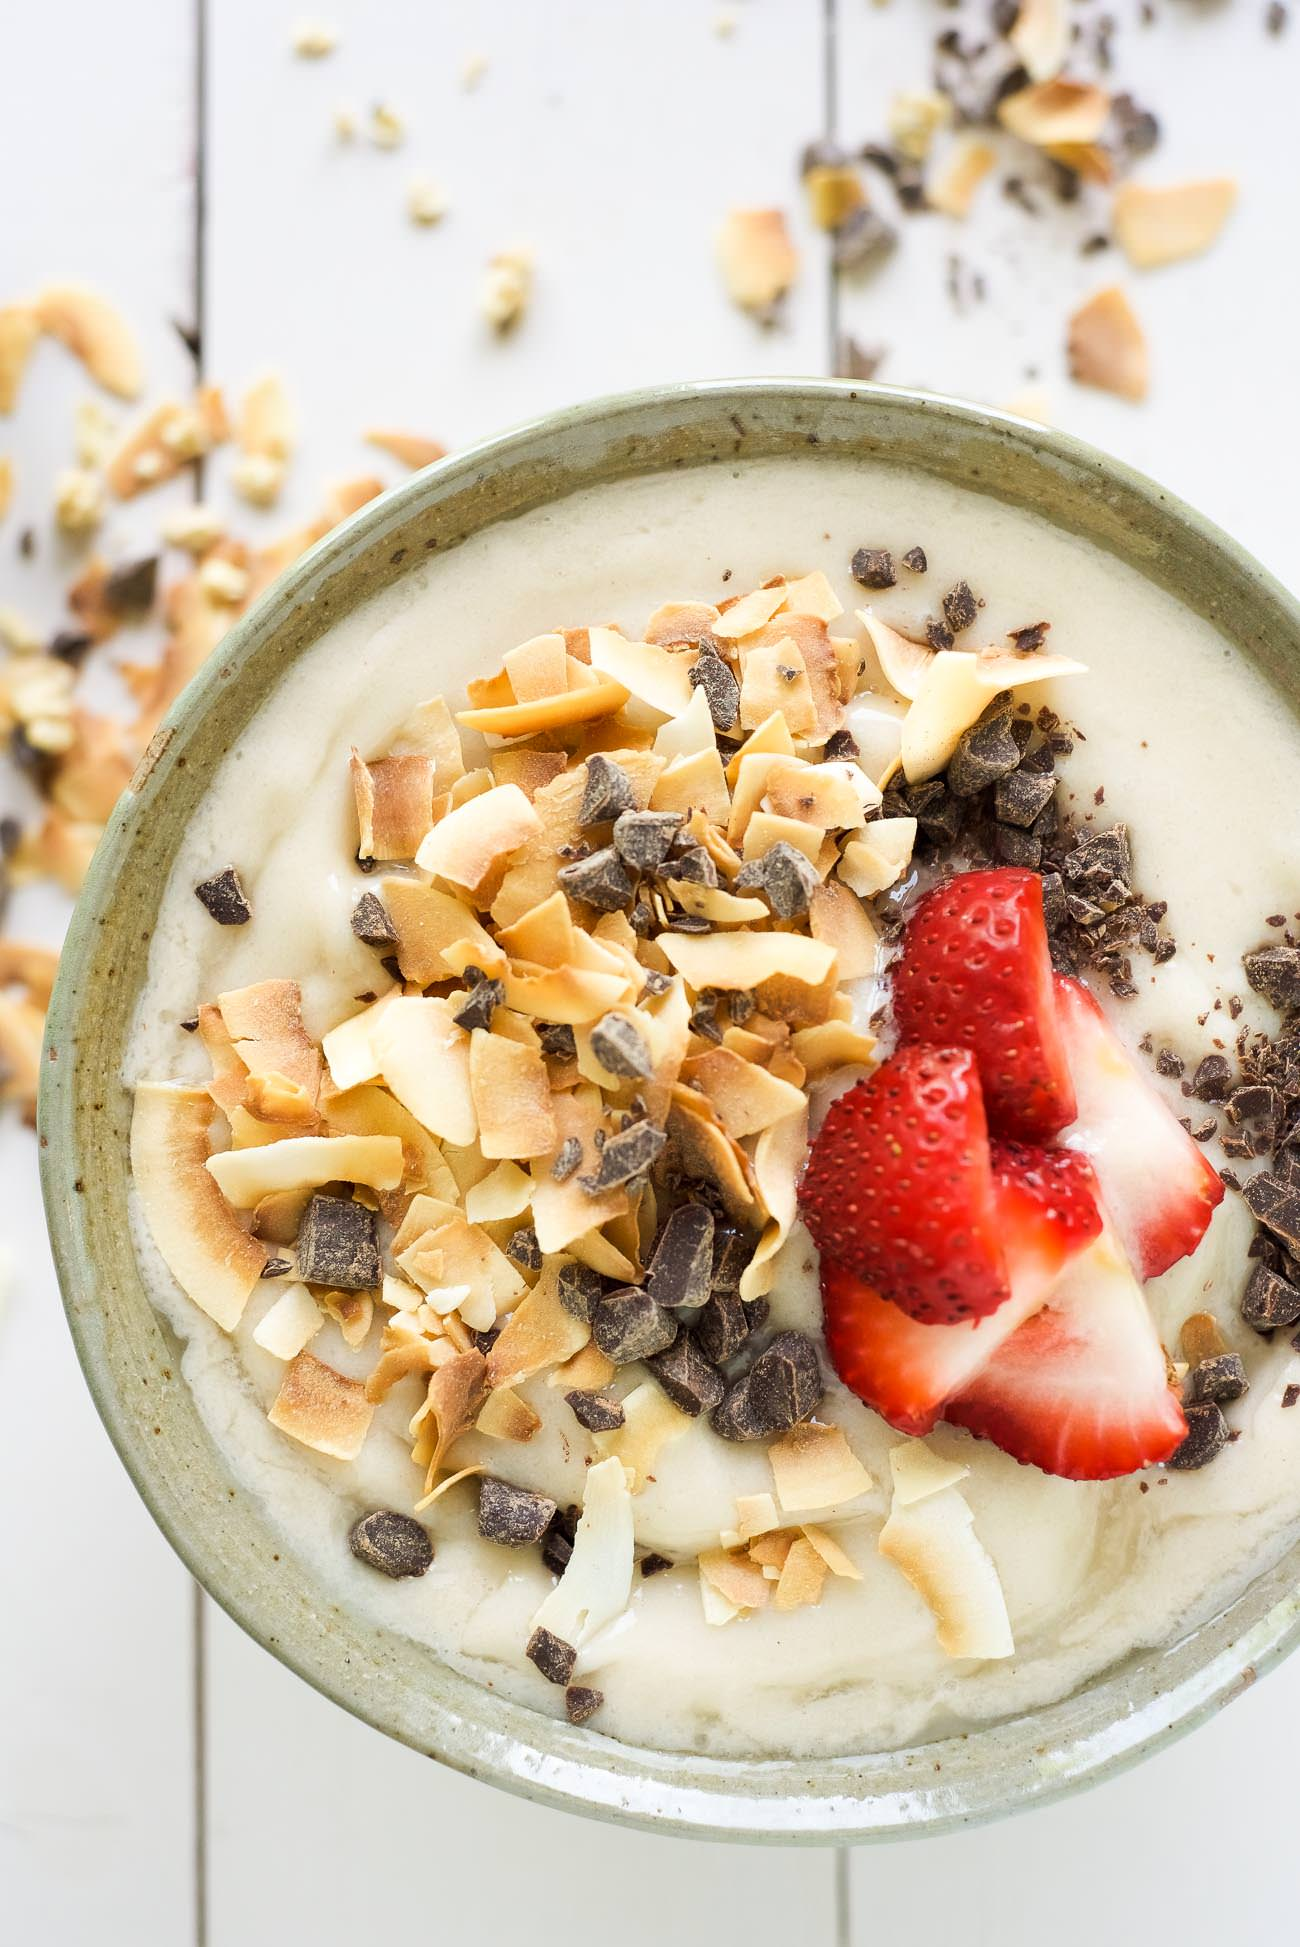 Dark Chocolate and Toasted Coconut Smoothie Bowl is a nutritious and fun twist on a smoothie! Filled with tropical flavors of banana and coconut and topped with dark chocolate, fruit, granola and chia seeds!